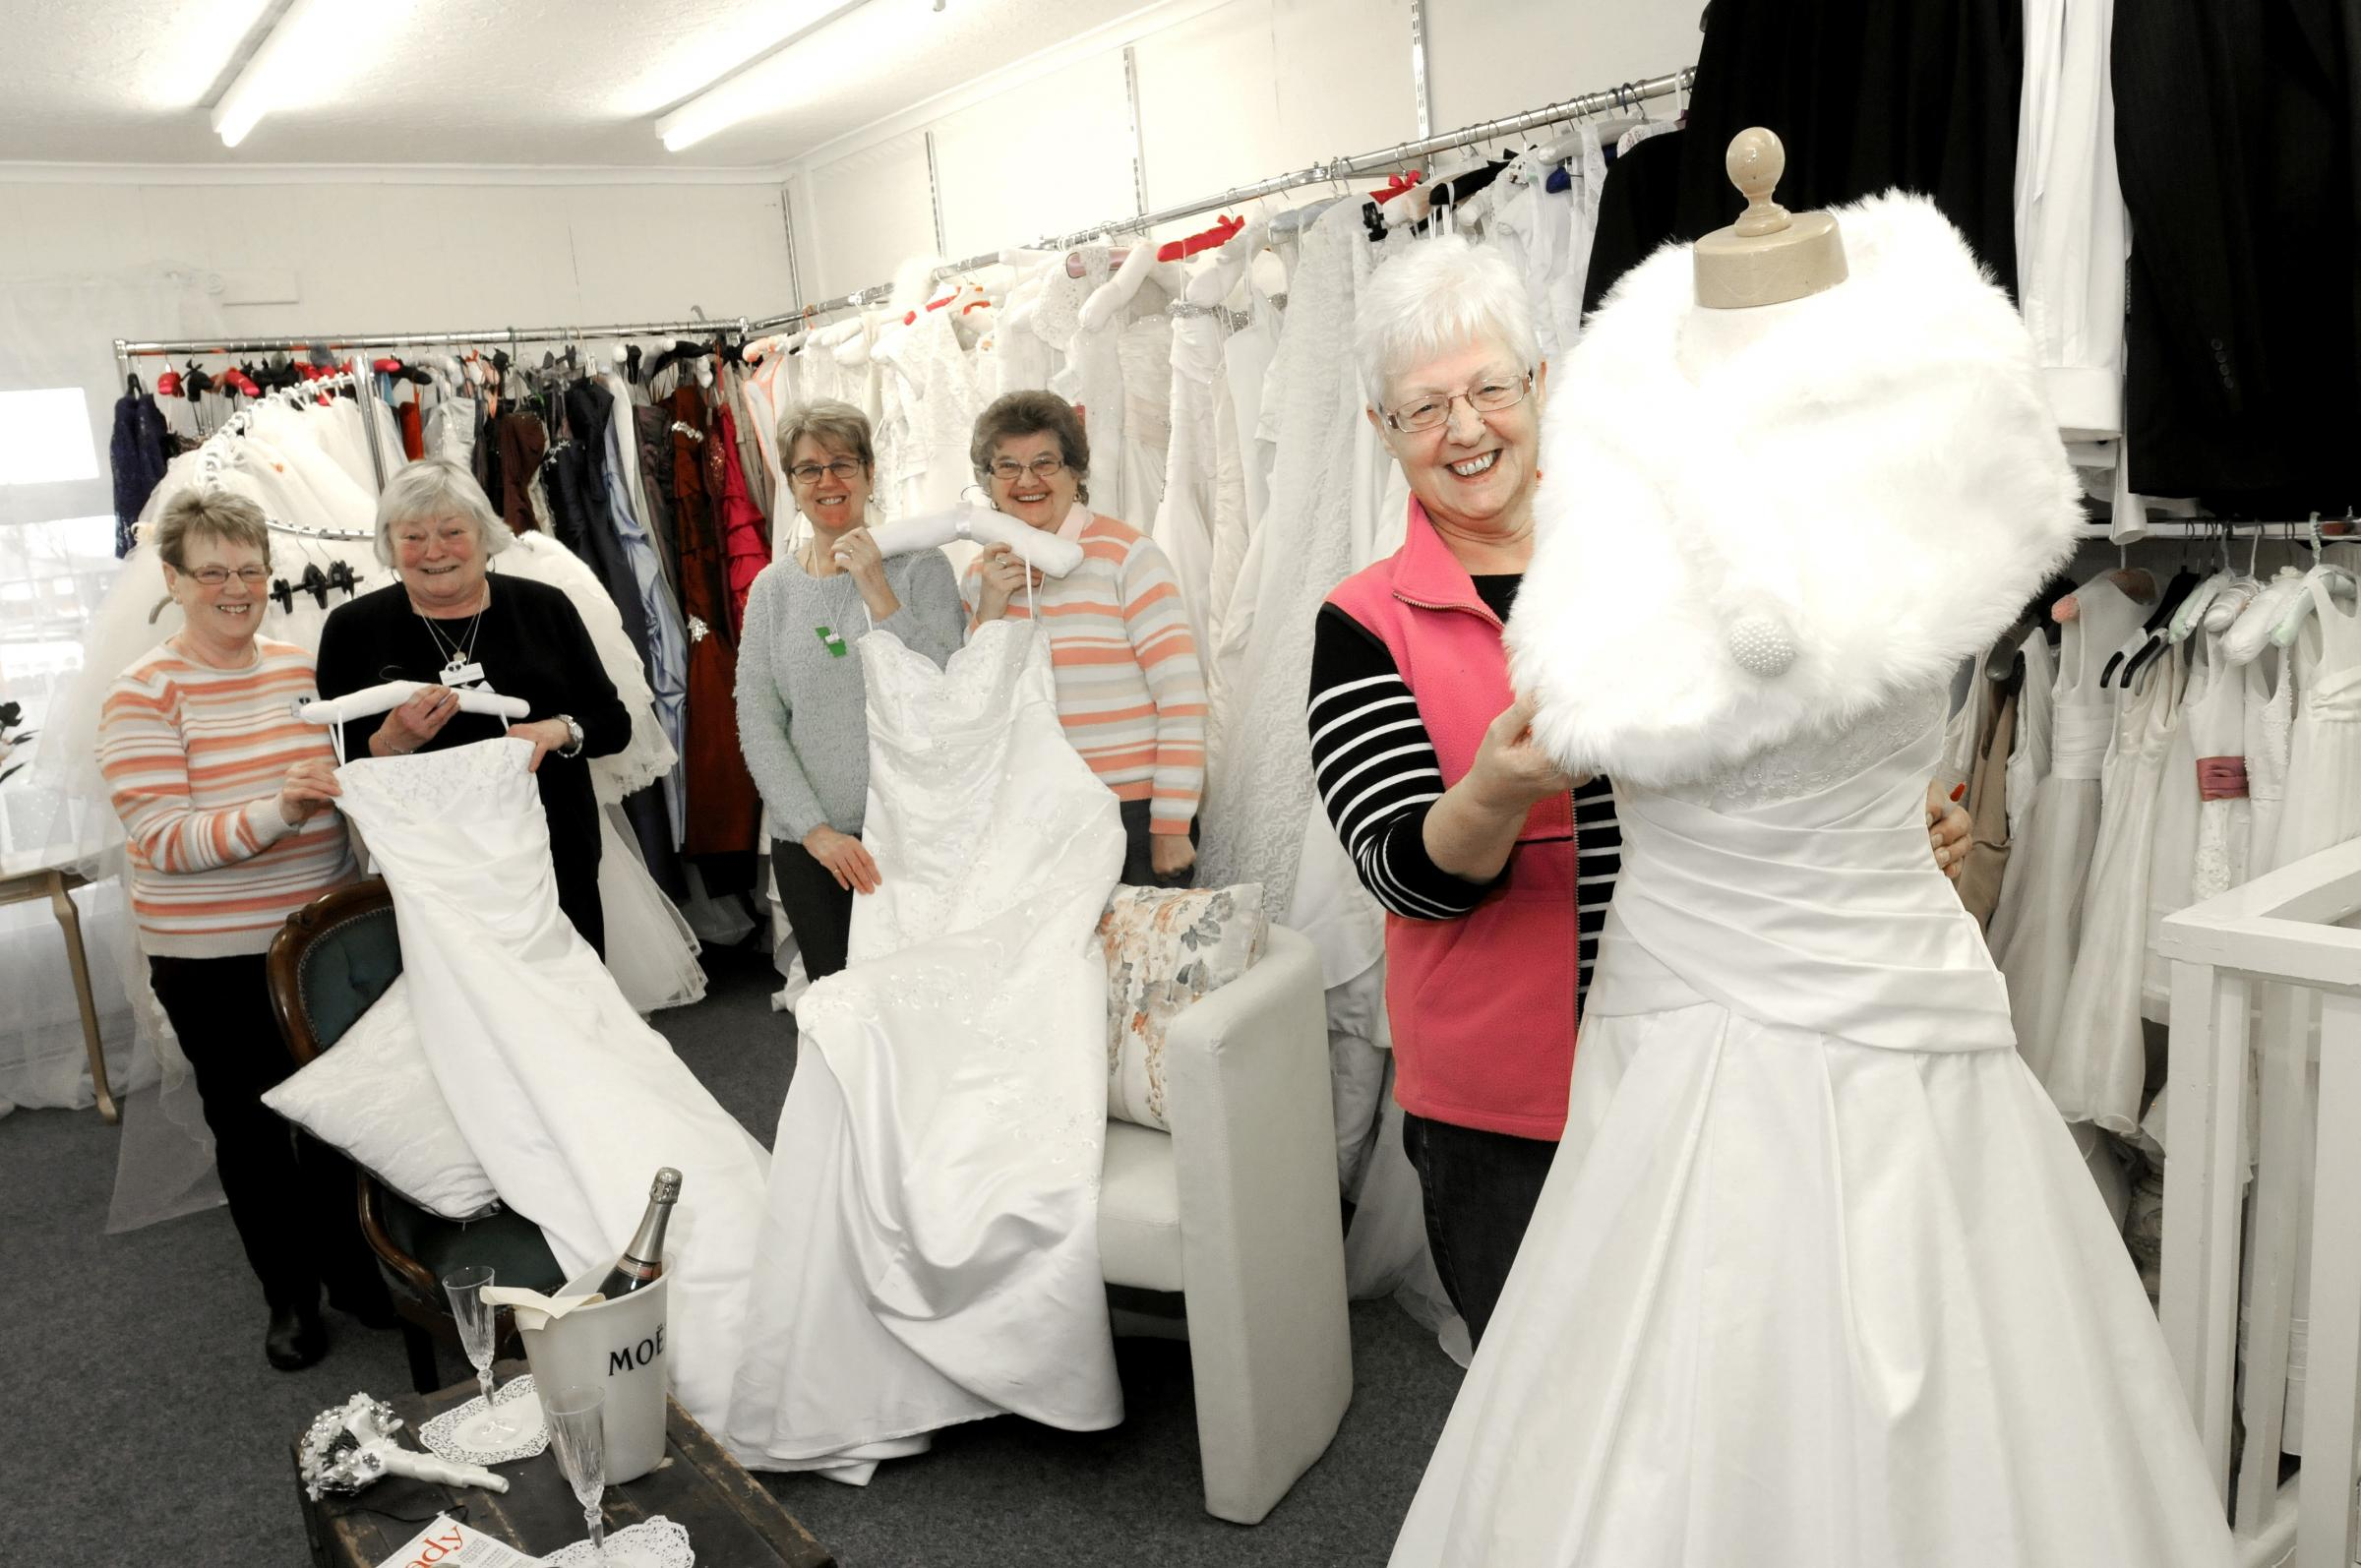 Bride inspired to renew vows after seeing wedding dress in St ...